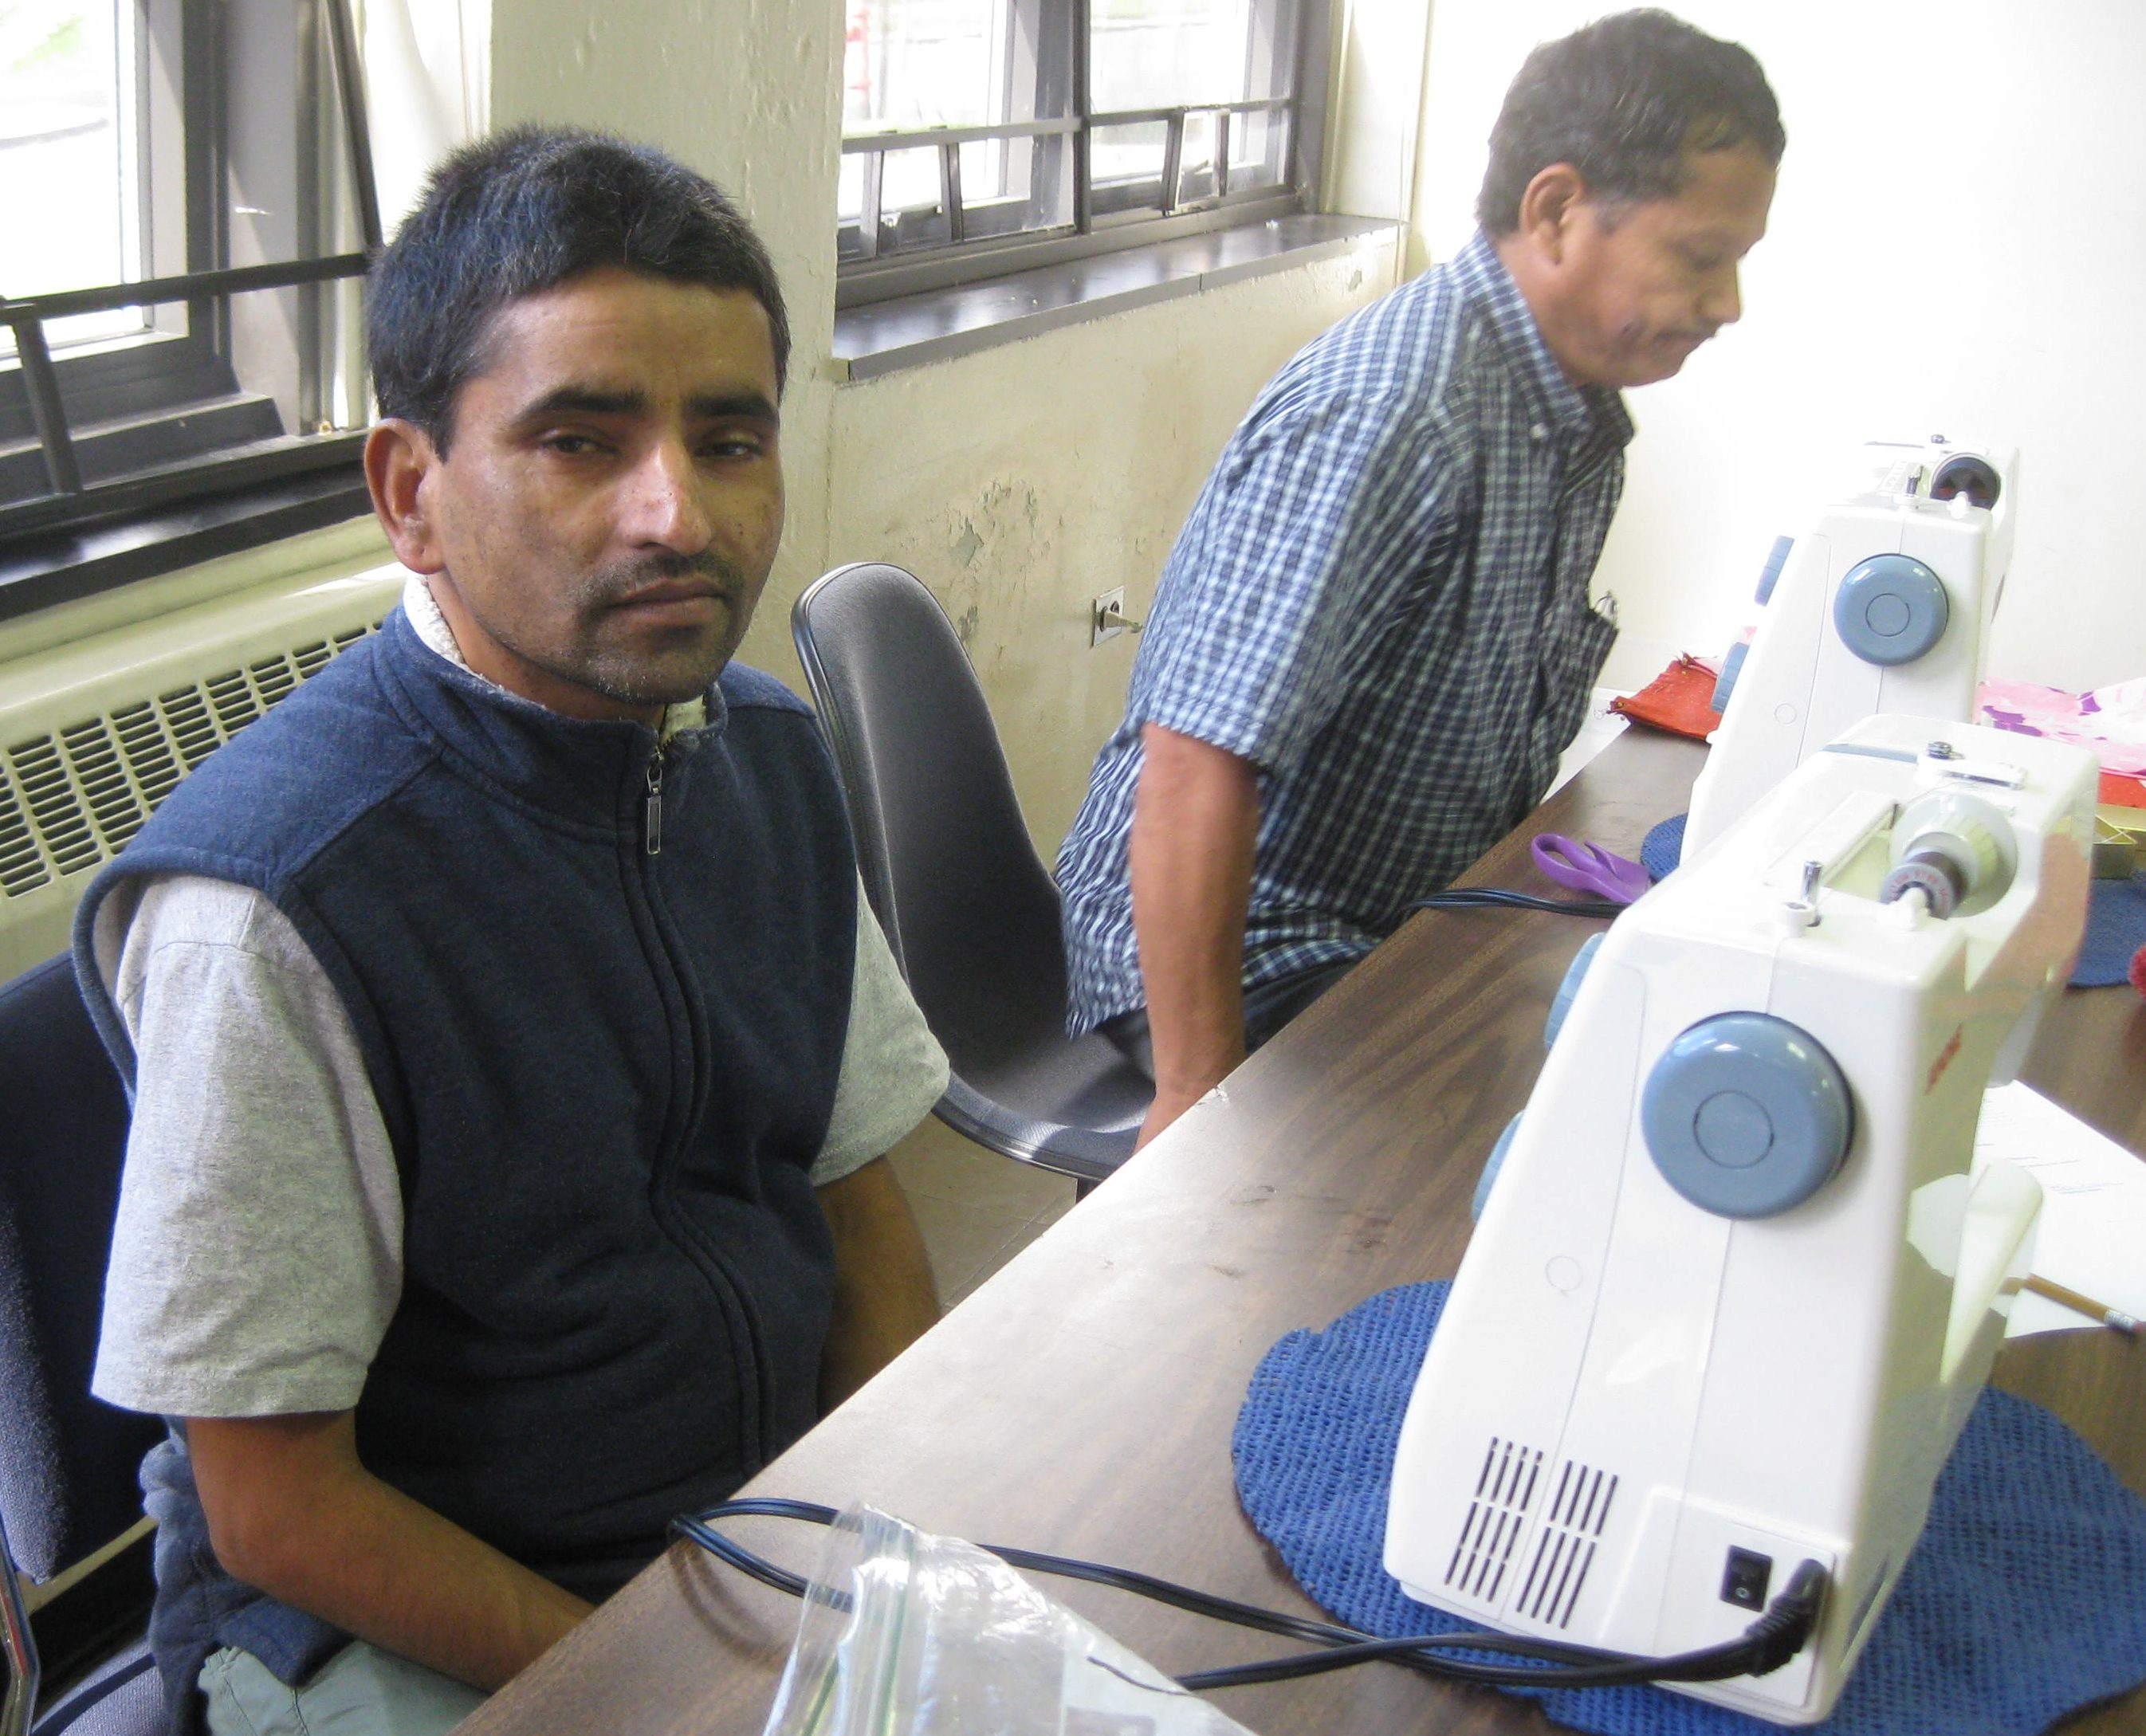 Sewing class - students check out the machines